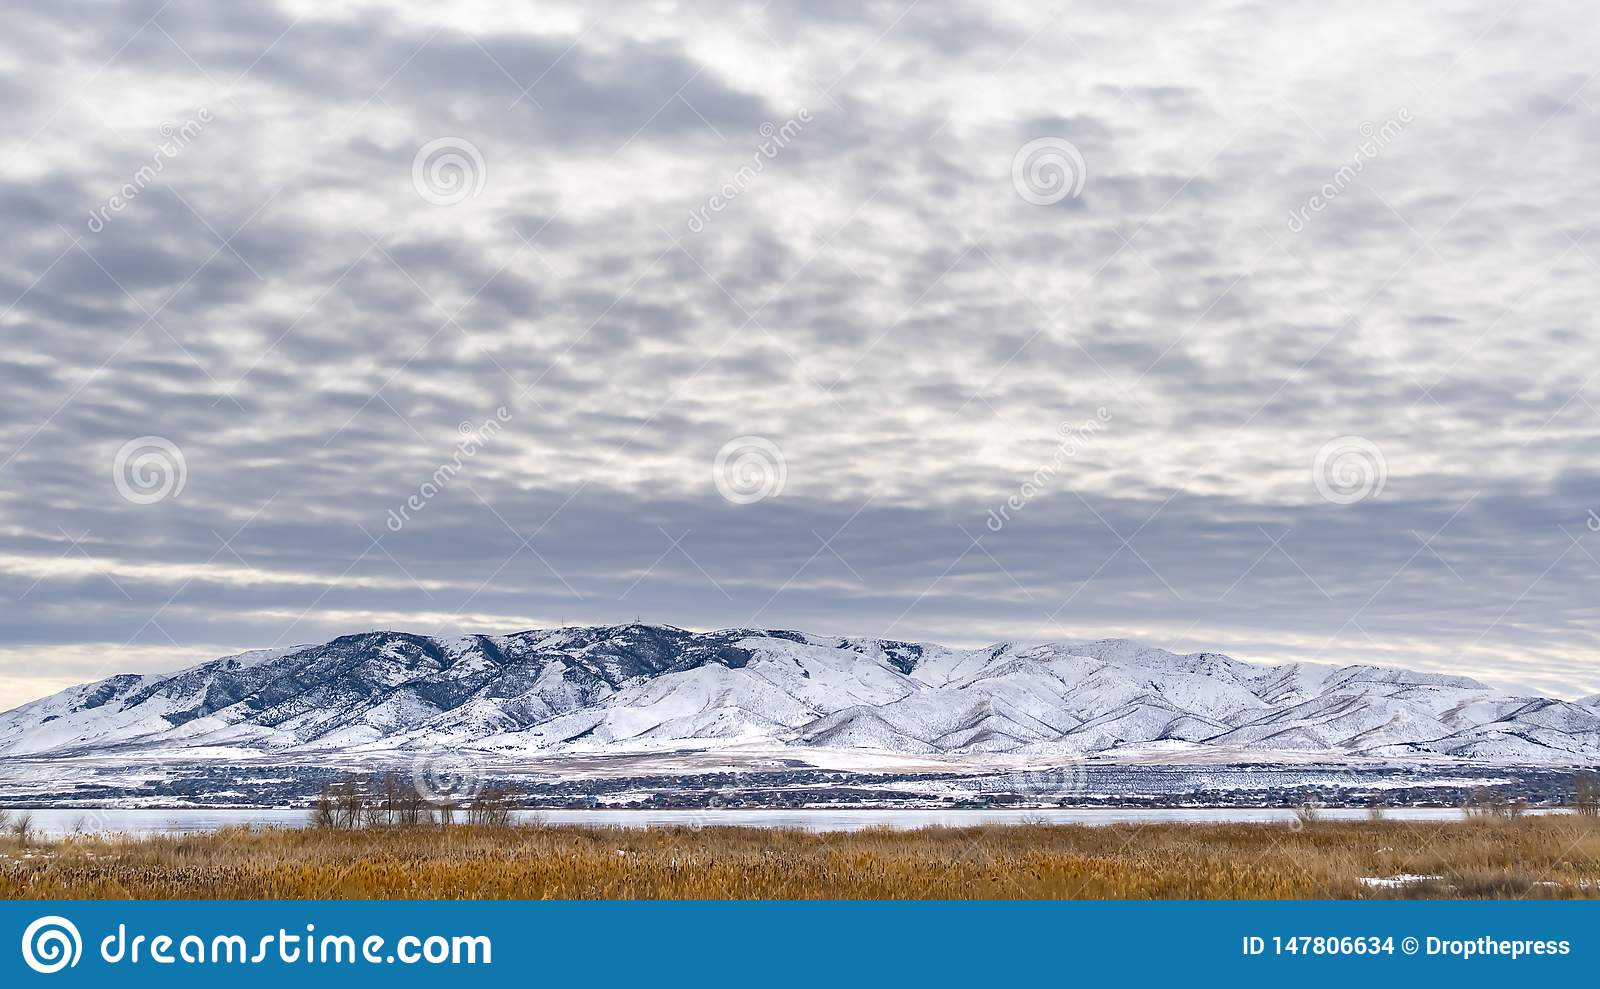 Clear Panorama Dramatic sky filled with cottony clouds over a scenic landscape in winter